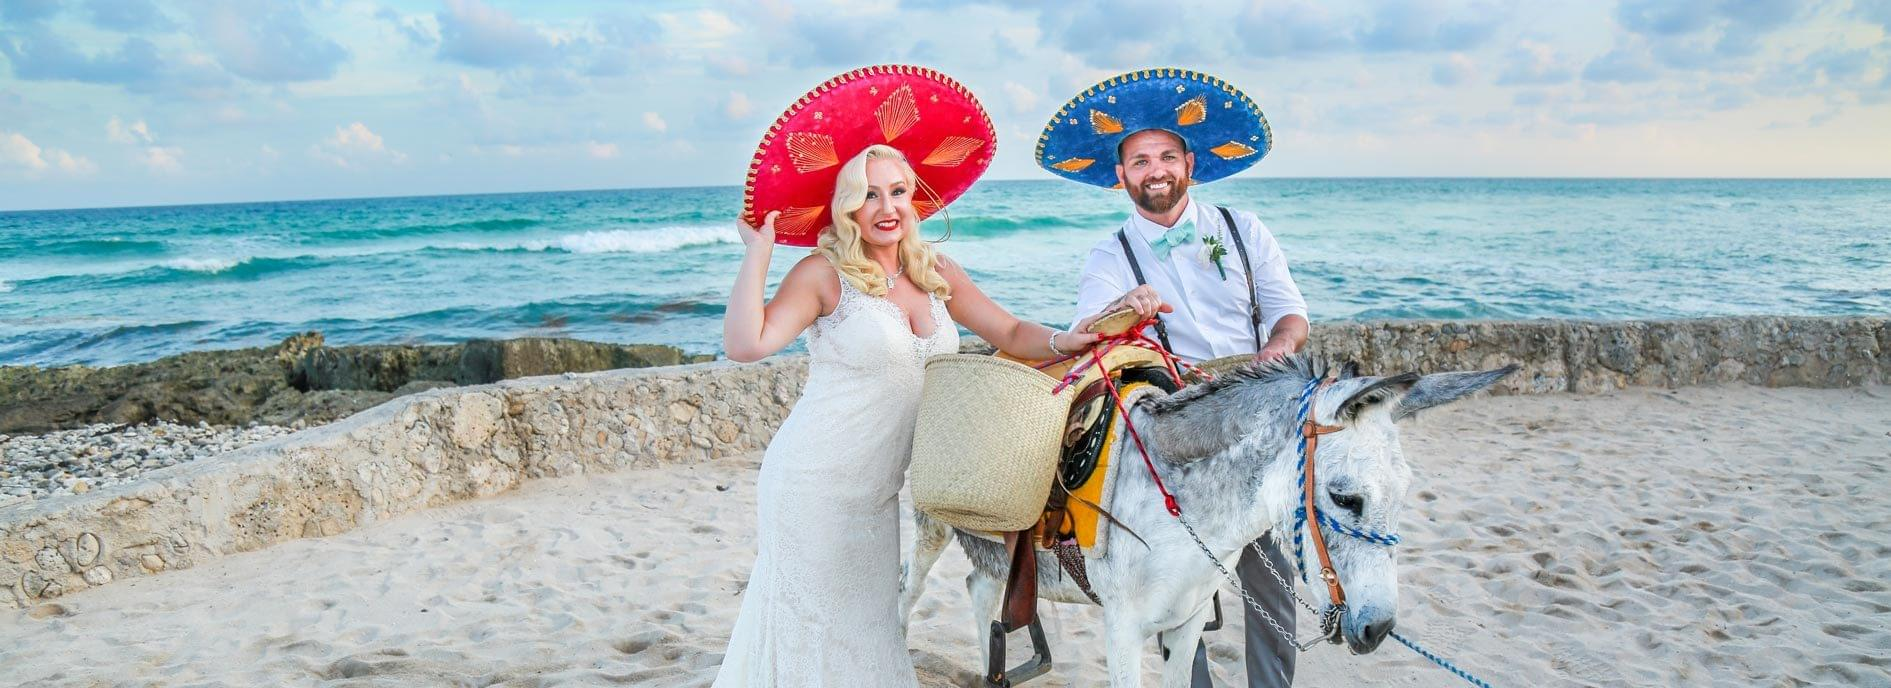 Wedding Planner for Destination Weddings in Mexico